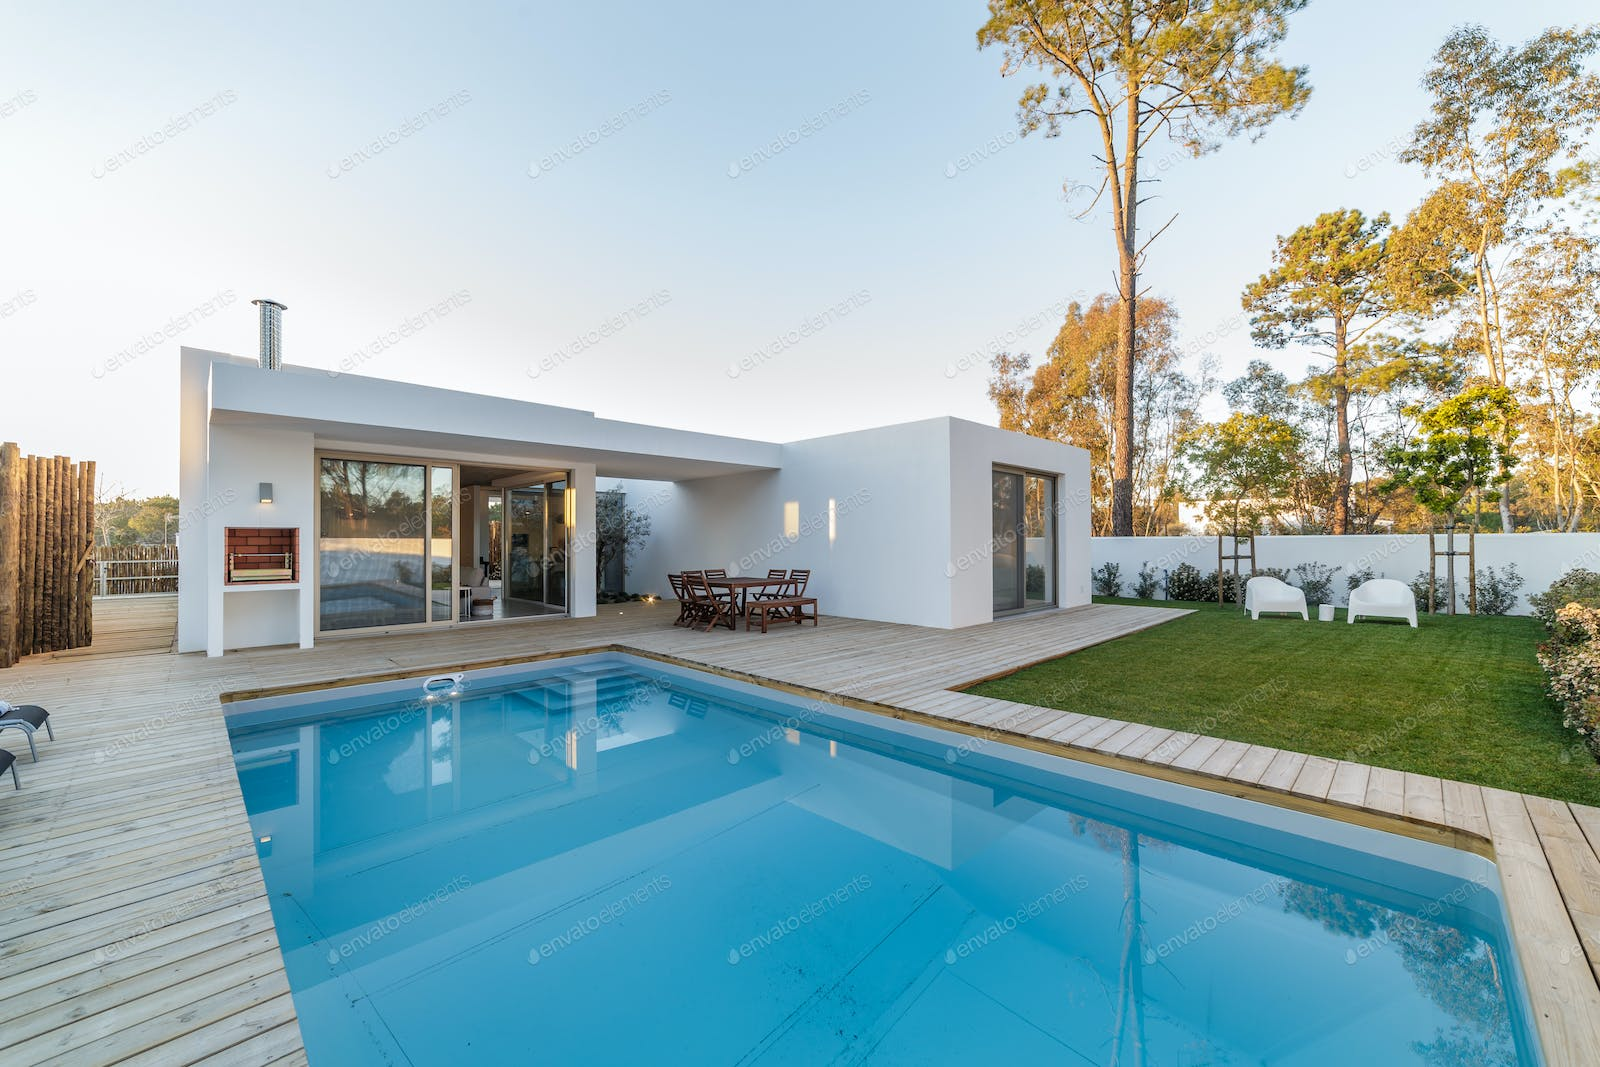 Modern House With Garden Swimming Pool And Wooden Deck Photo By Luisviegas On Envato Elements